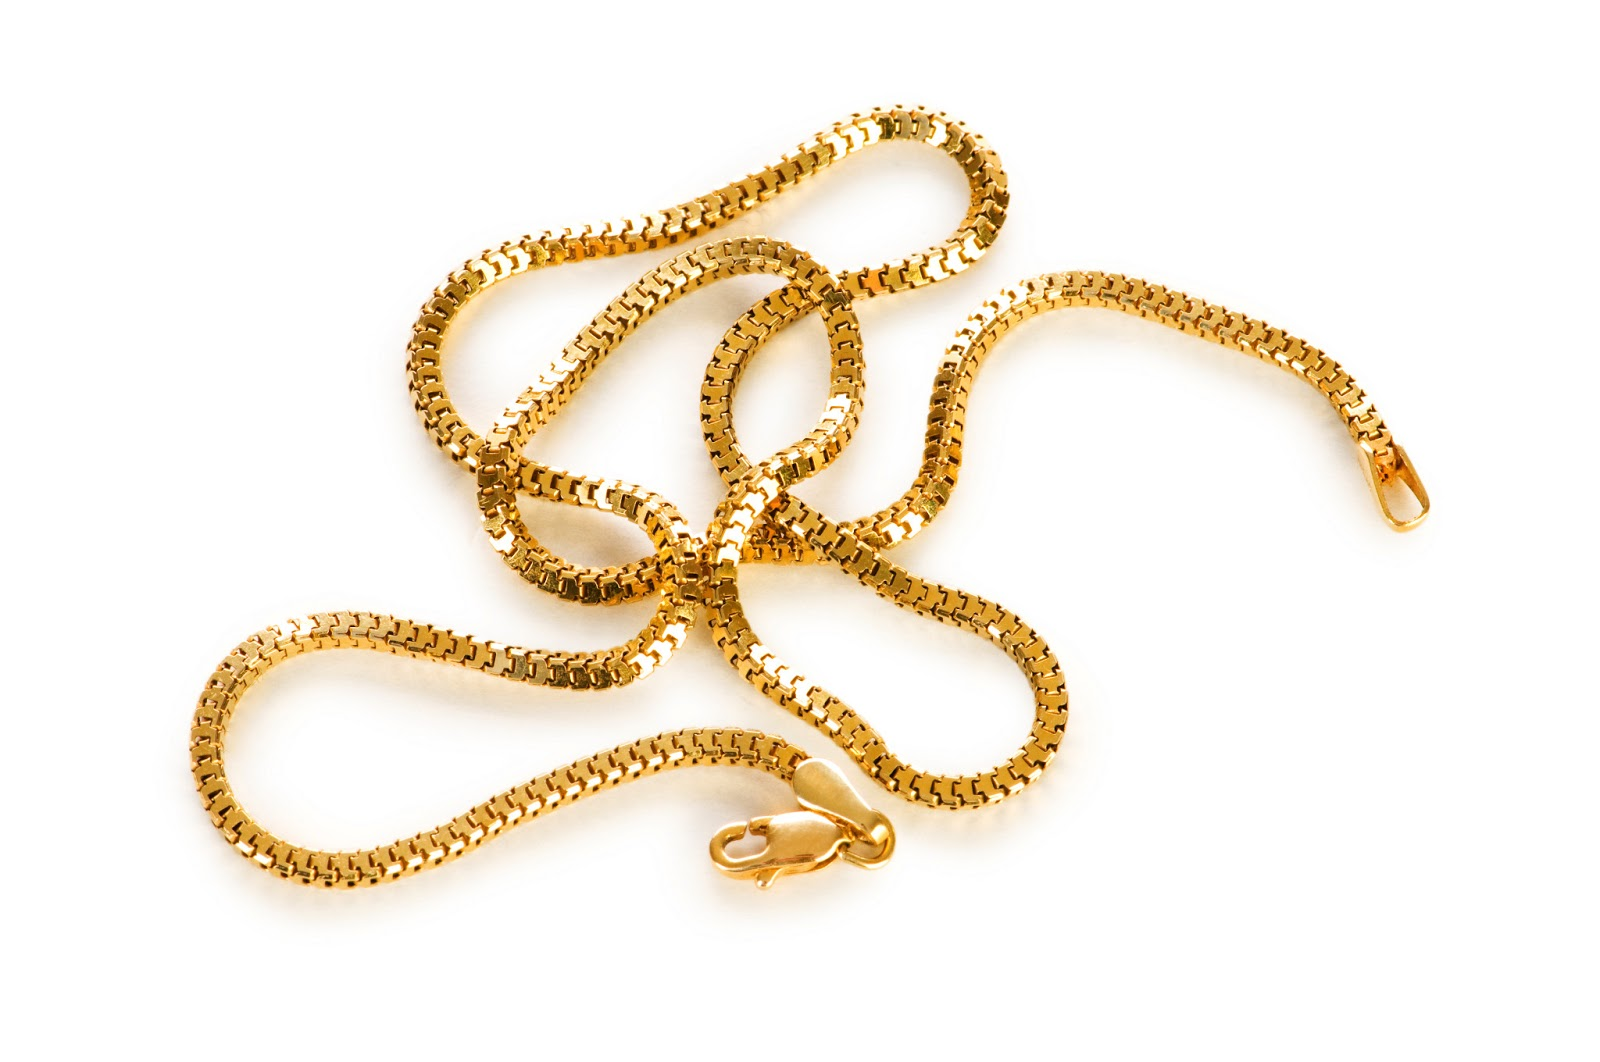 Great Ideas for Men's Gifts: Gold Chains For Men Make A ...